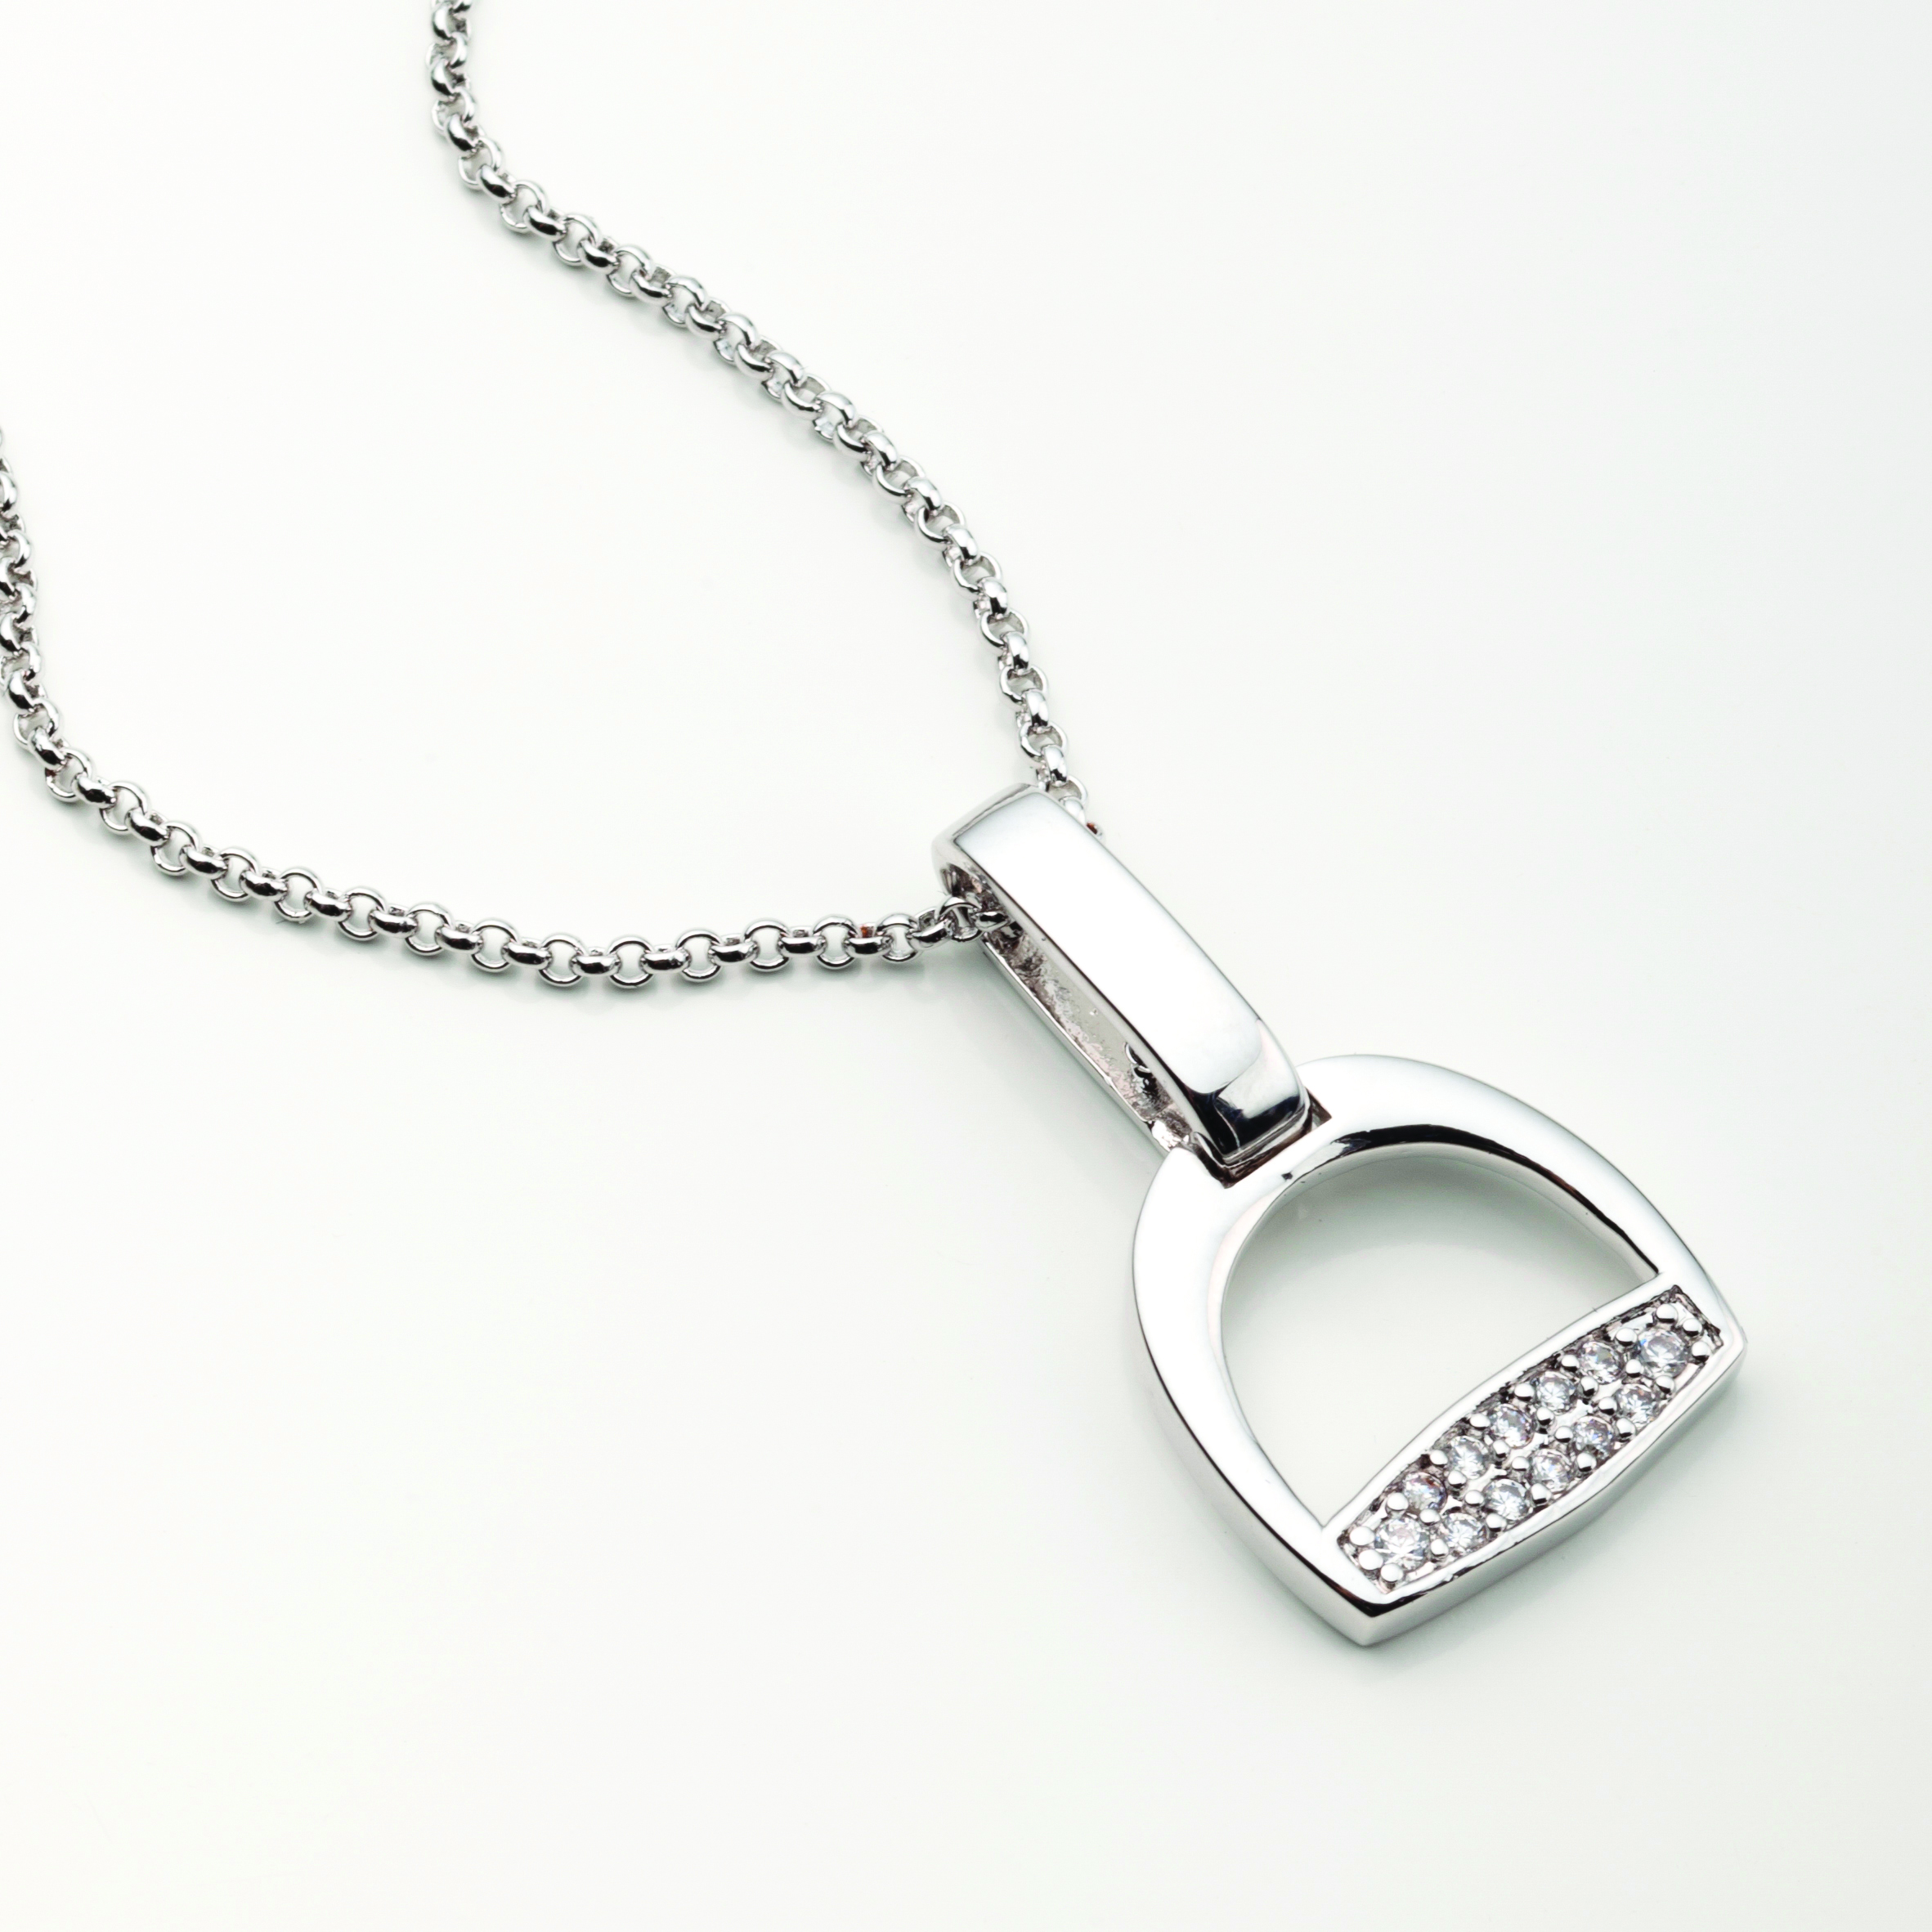 Stirrup with Clear CZ Rhinestones Necklace